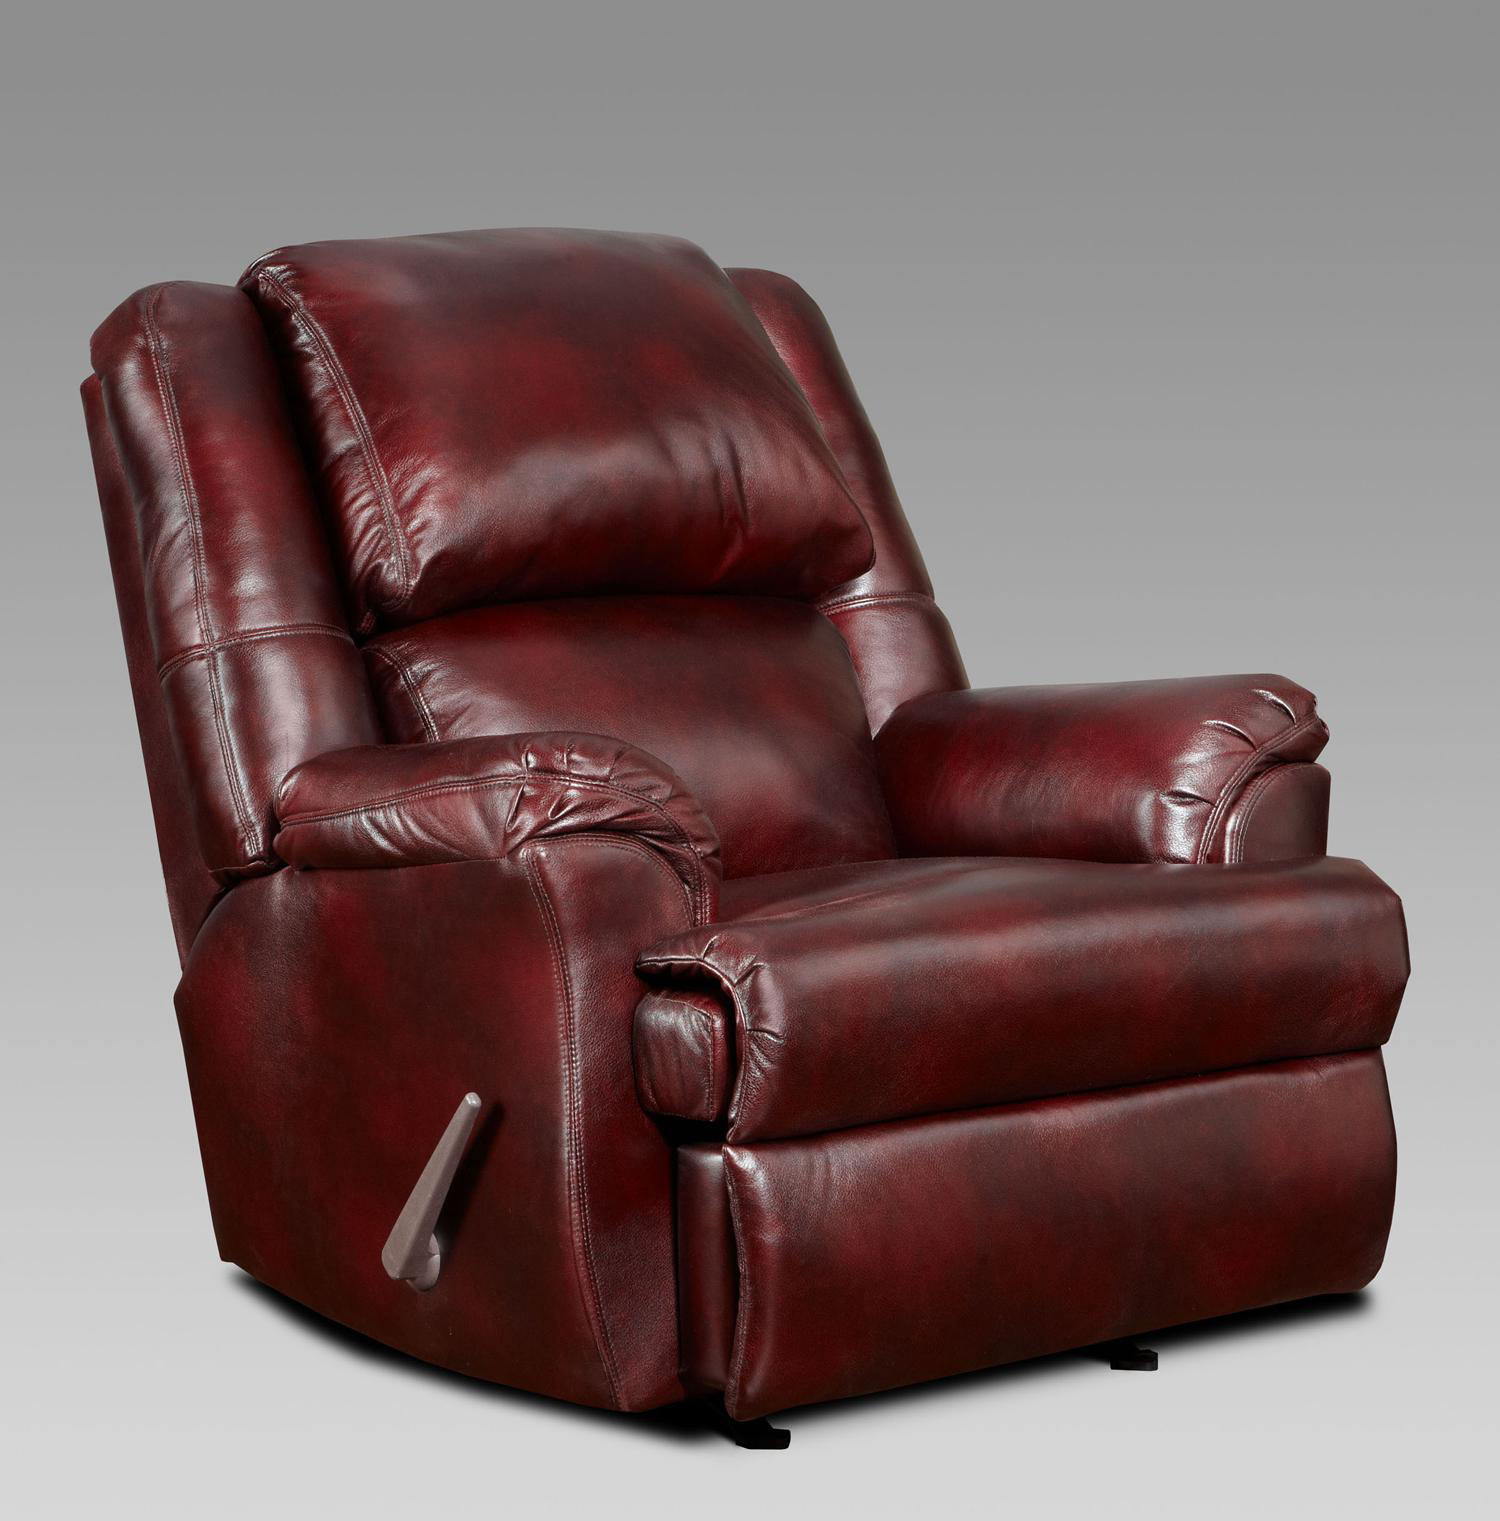 Chelsea home furniture chaise rocker recliner mesa bordeaux for Chaise x rocker